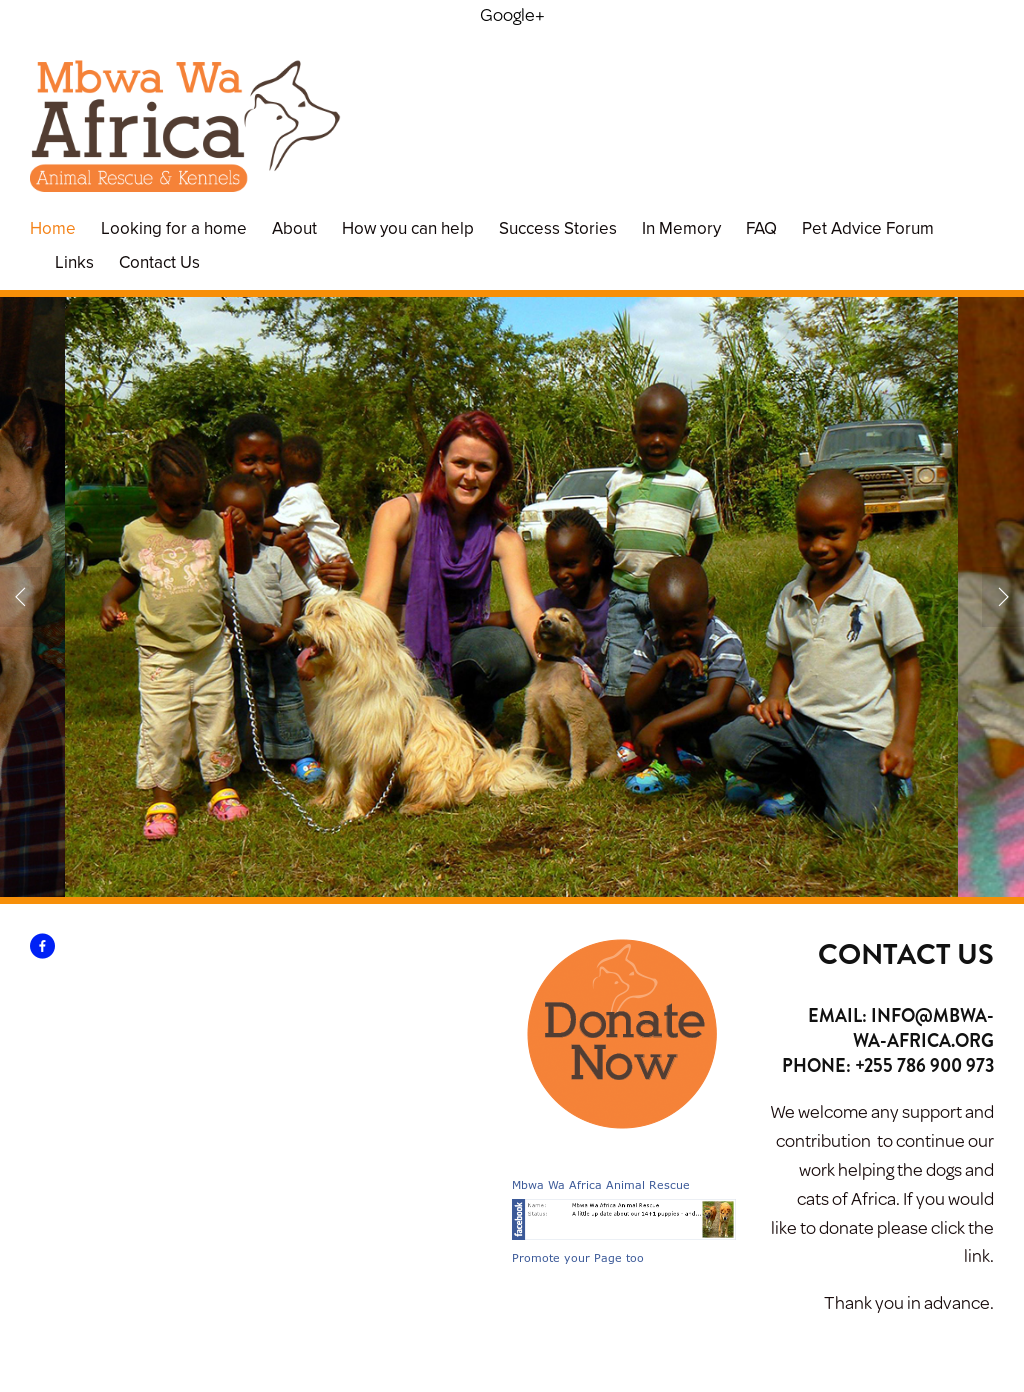 Mbwa Wa Africa Animal Rescue Competitors, Revenue and Employees